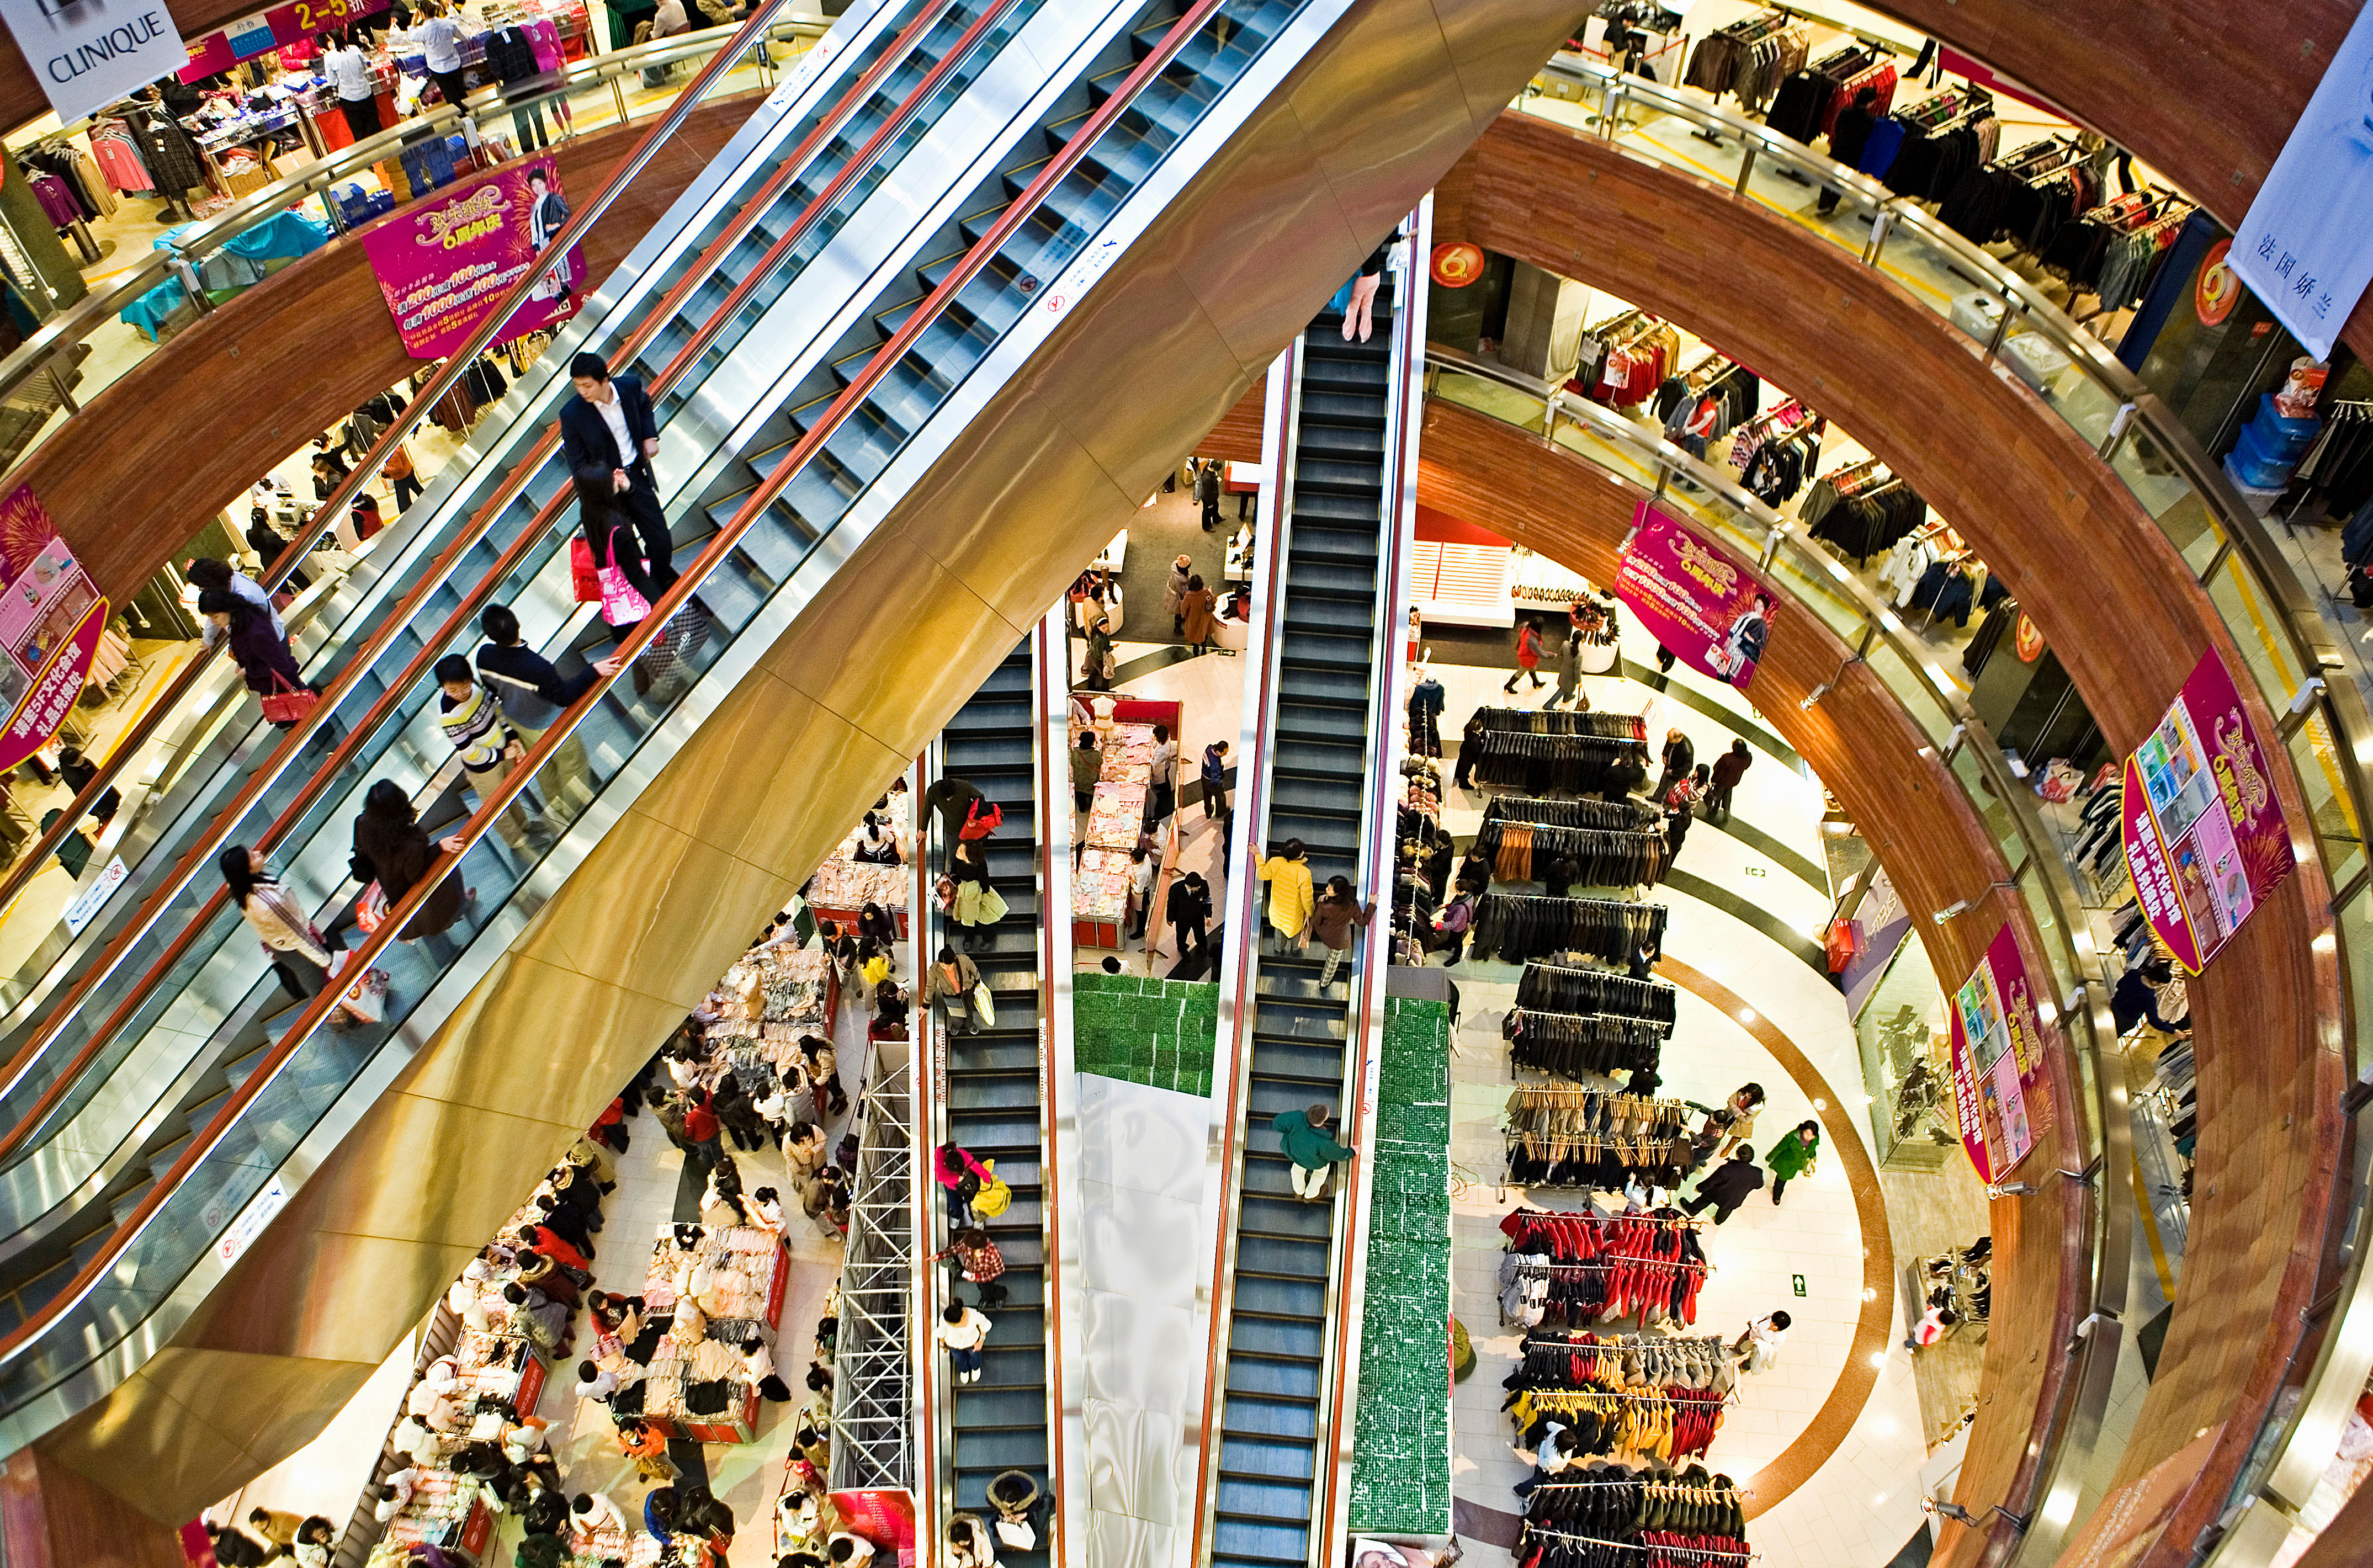 A top-down photo of intersecting gold-colored escalators in a shopping mall